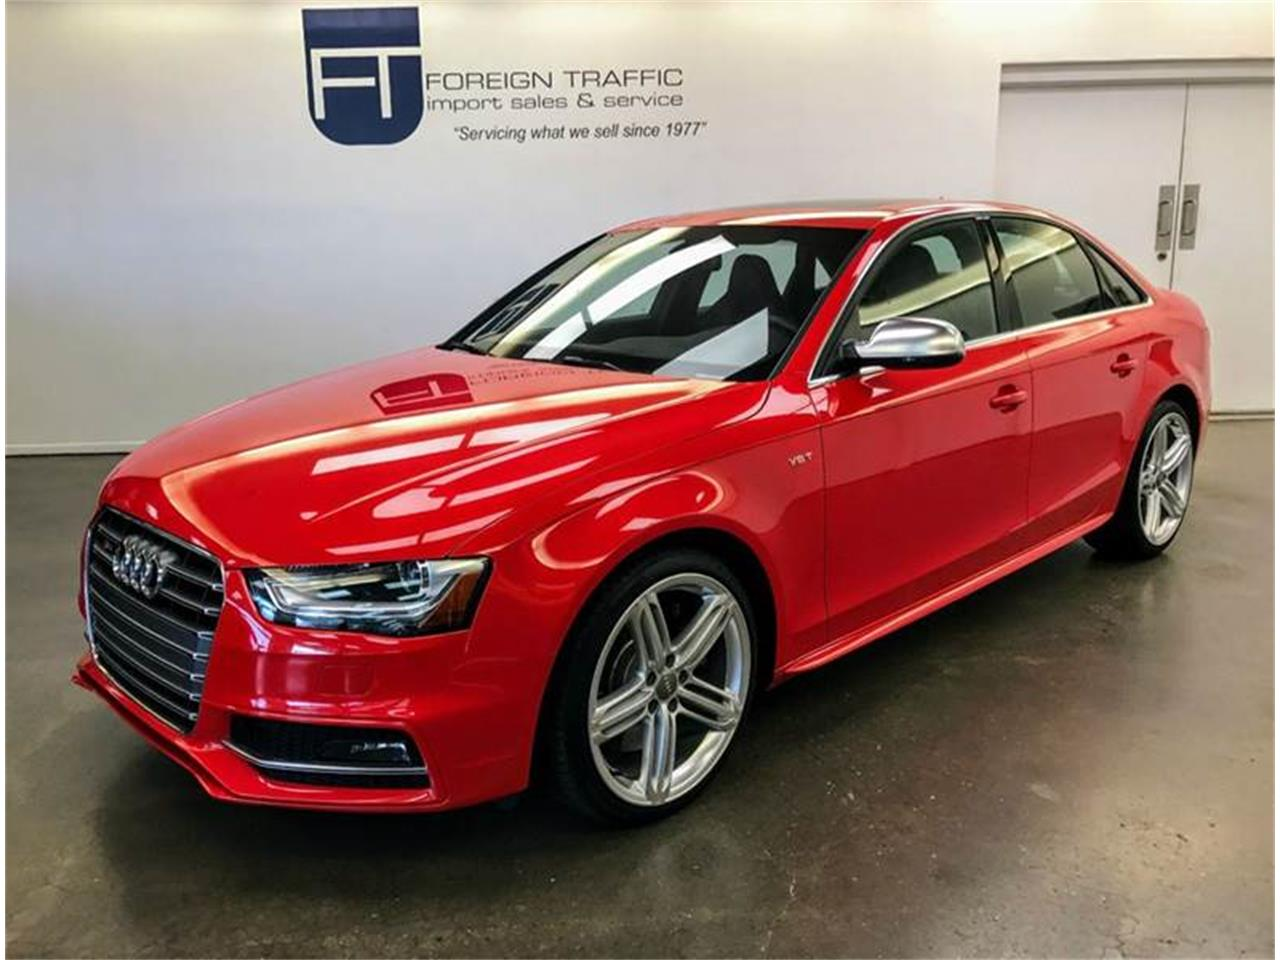 Large Picture of '16 Audi S4 Offered by Foreign Traffic Import Sales & Service - LHL3